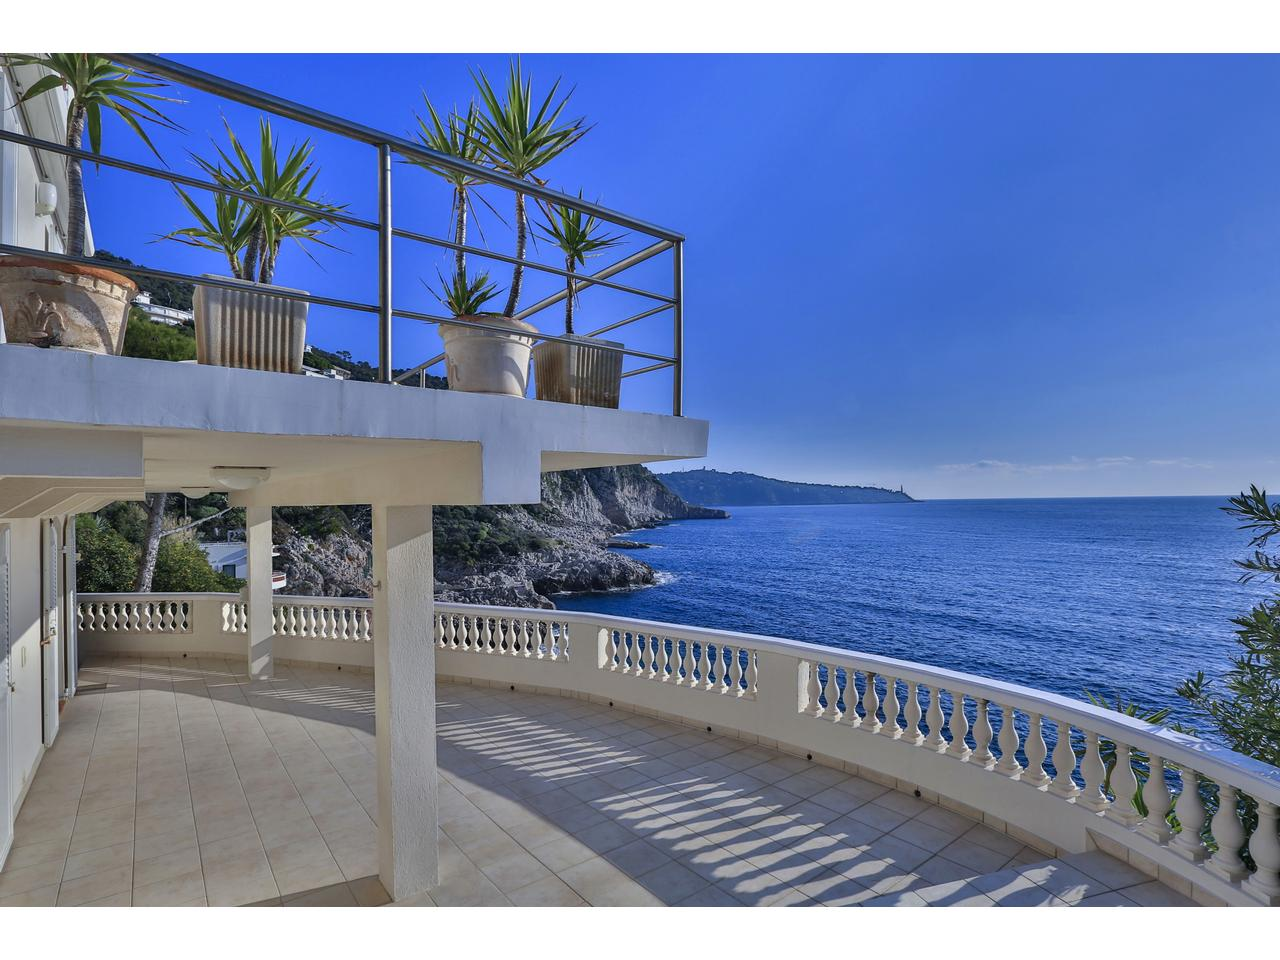 Vente House Nice Listing Houses And Properties For Sale With Nice Sea View